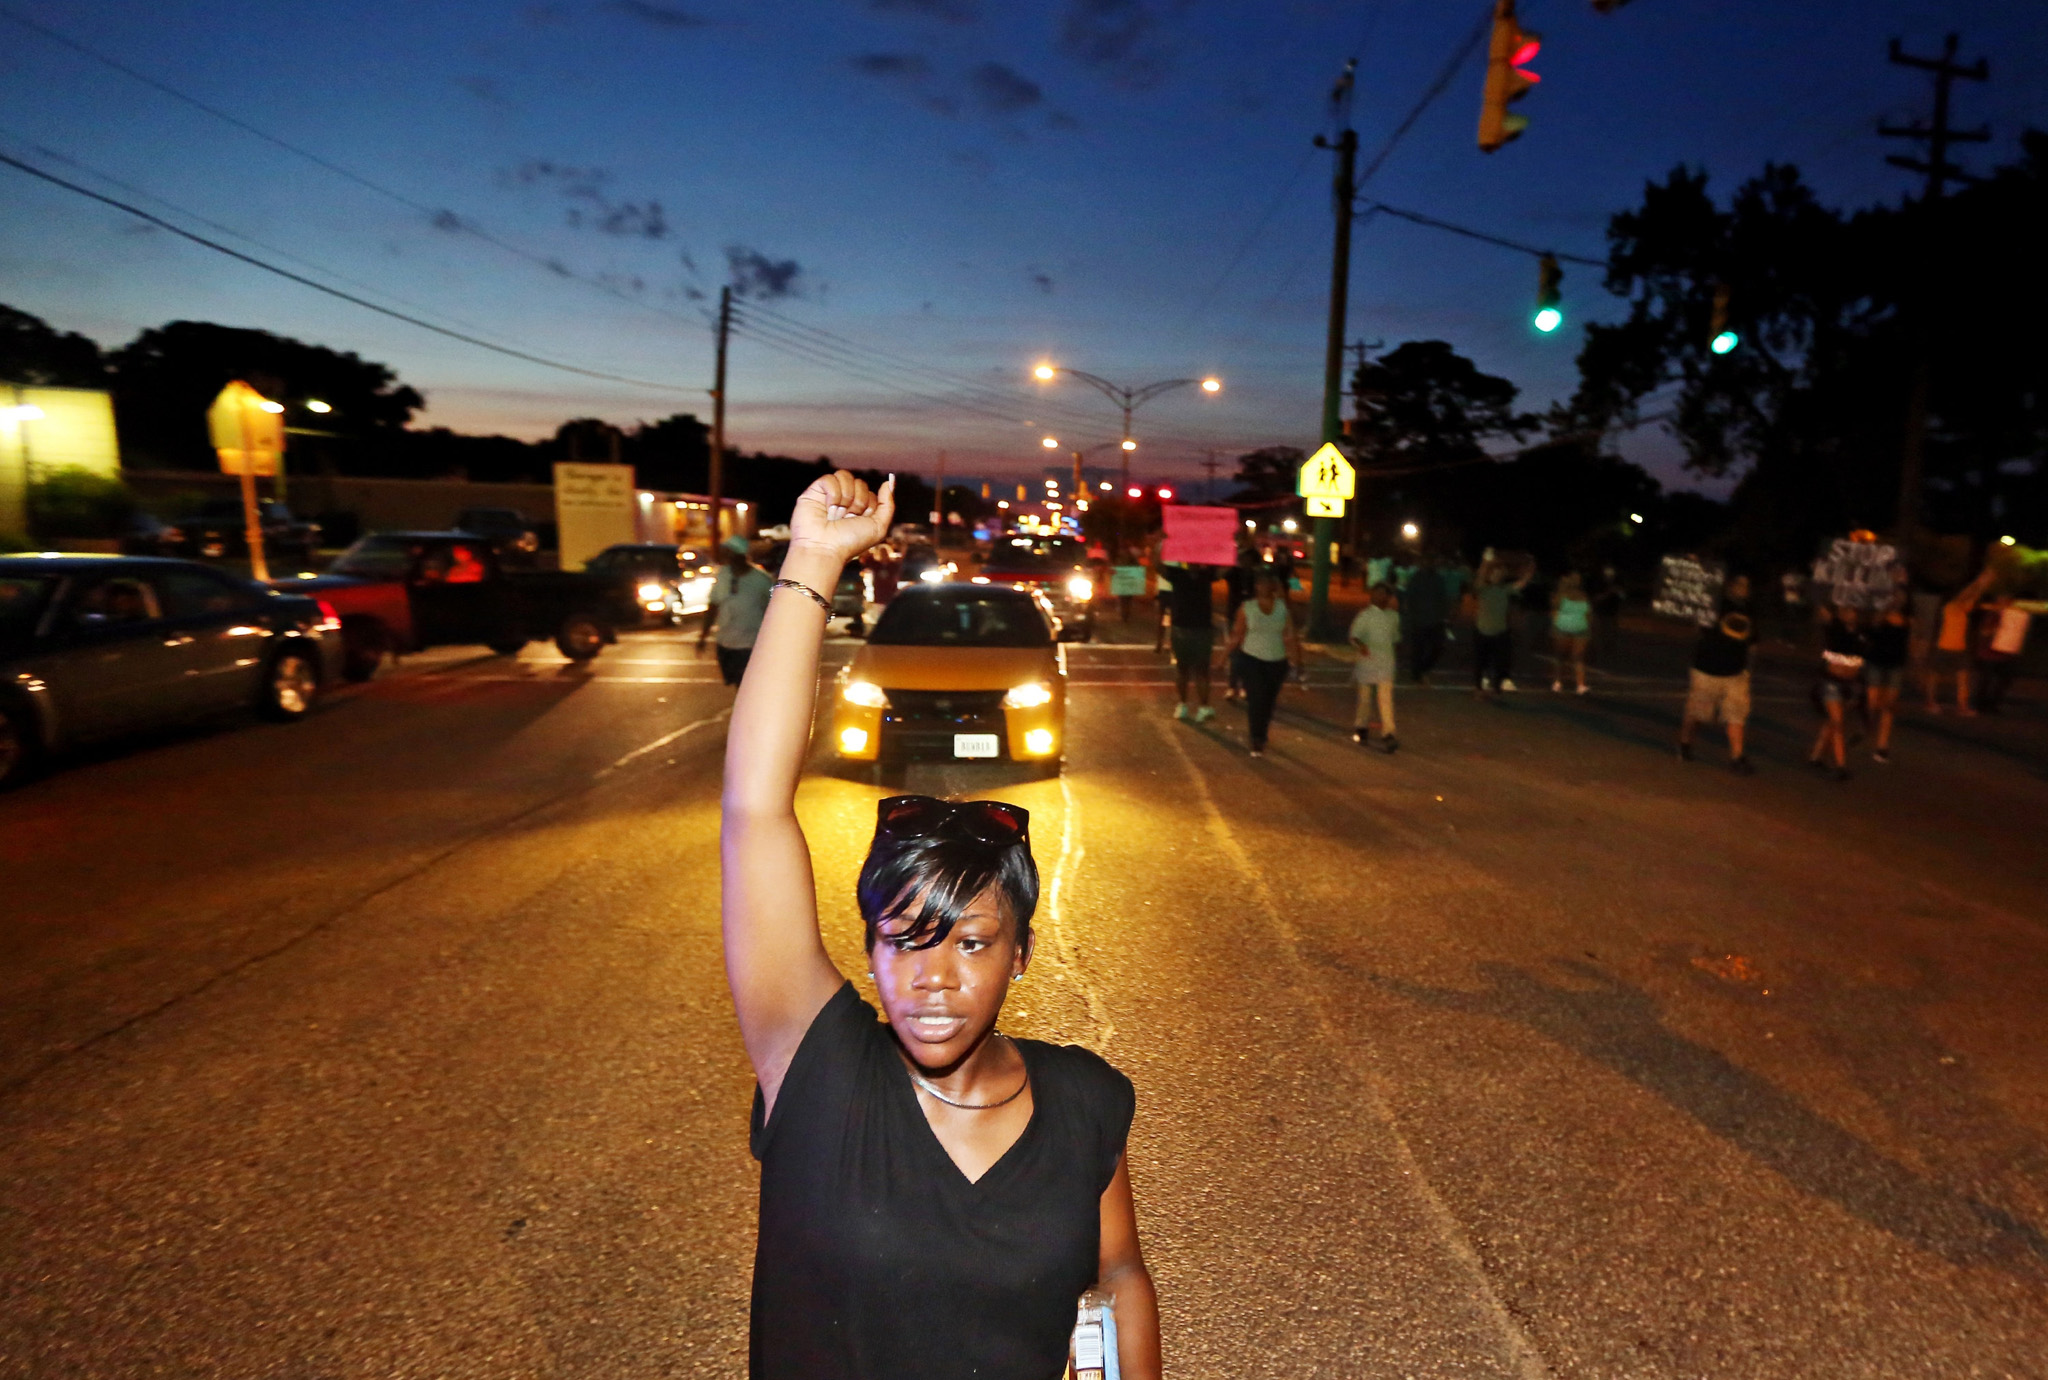 Sirica Bolling raises her fist as she walks down Jefferson Avenue during a Black Lives Matter protest against police brutality in Newport News, Va., Sunday July 10, 2016. (Aileen Devlin/The Daily Press via AP)